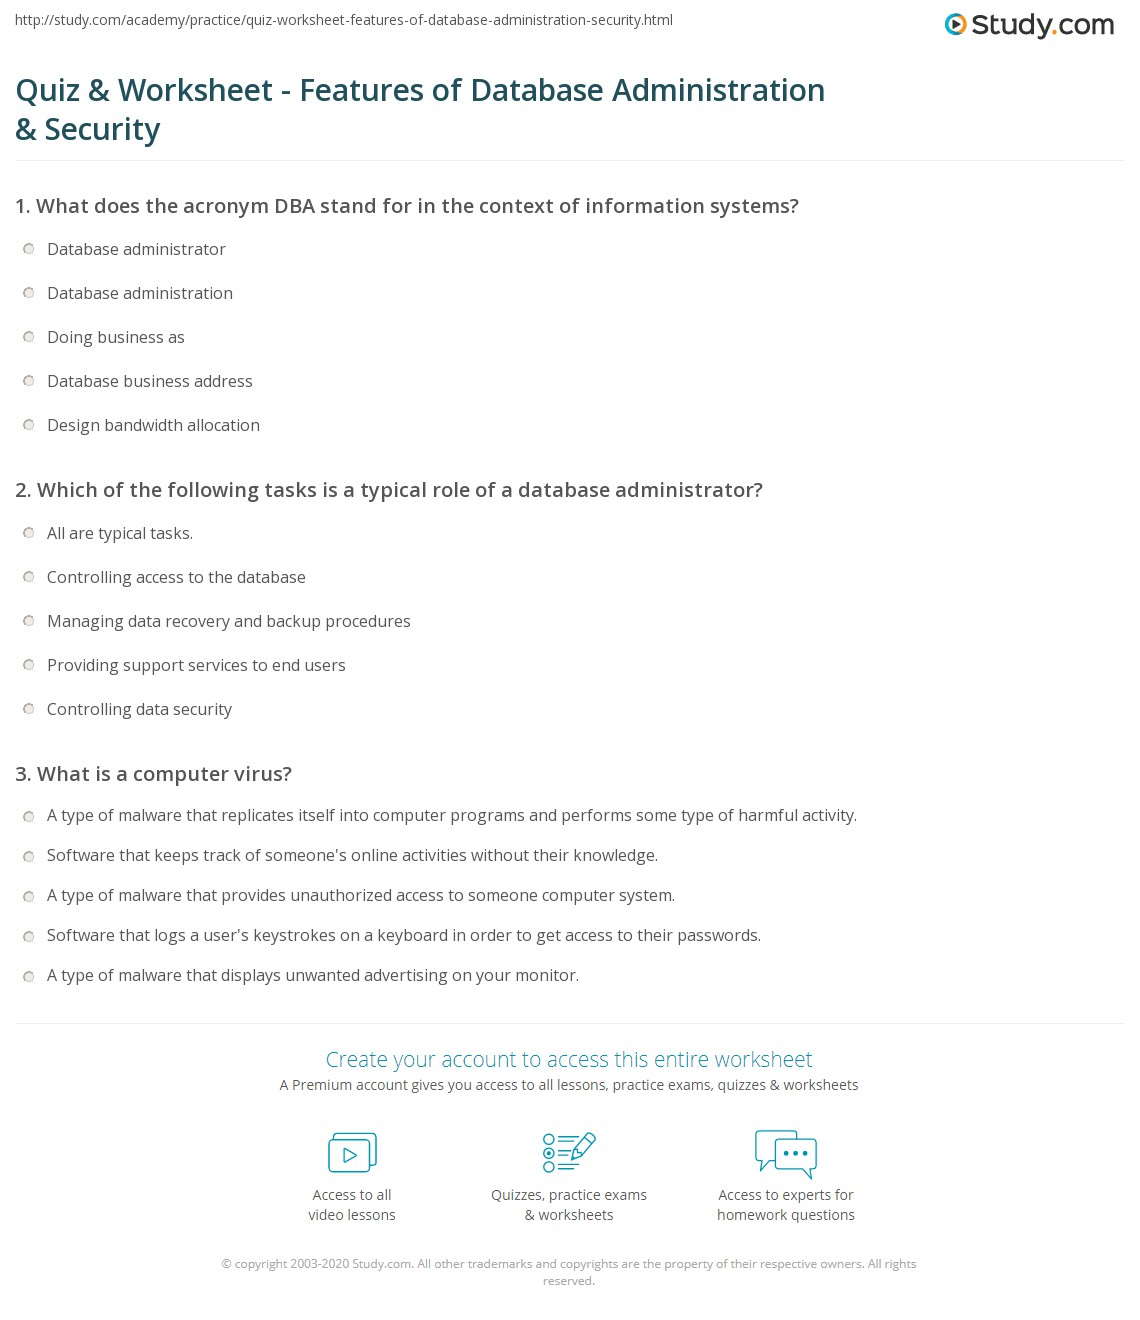 essay database security View essay - pt2520 week 5 ppp essay from database pt2520 at itt technical institute norwood campus, norwood oh database security sharon cadwell itt technical.